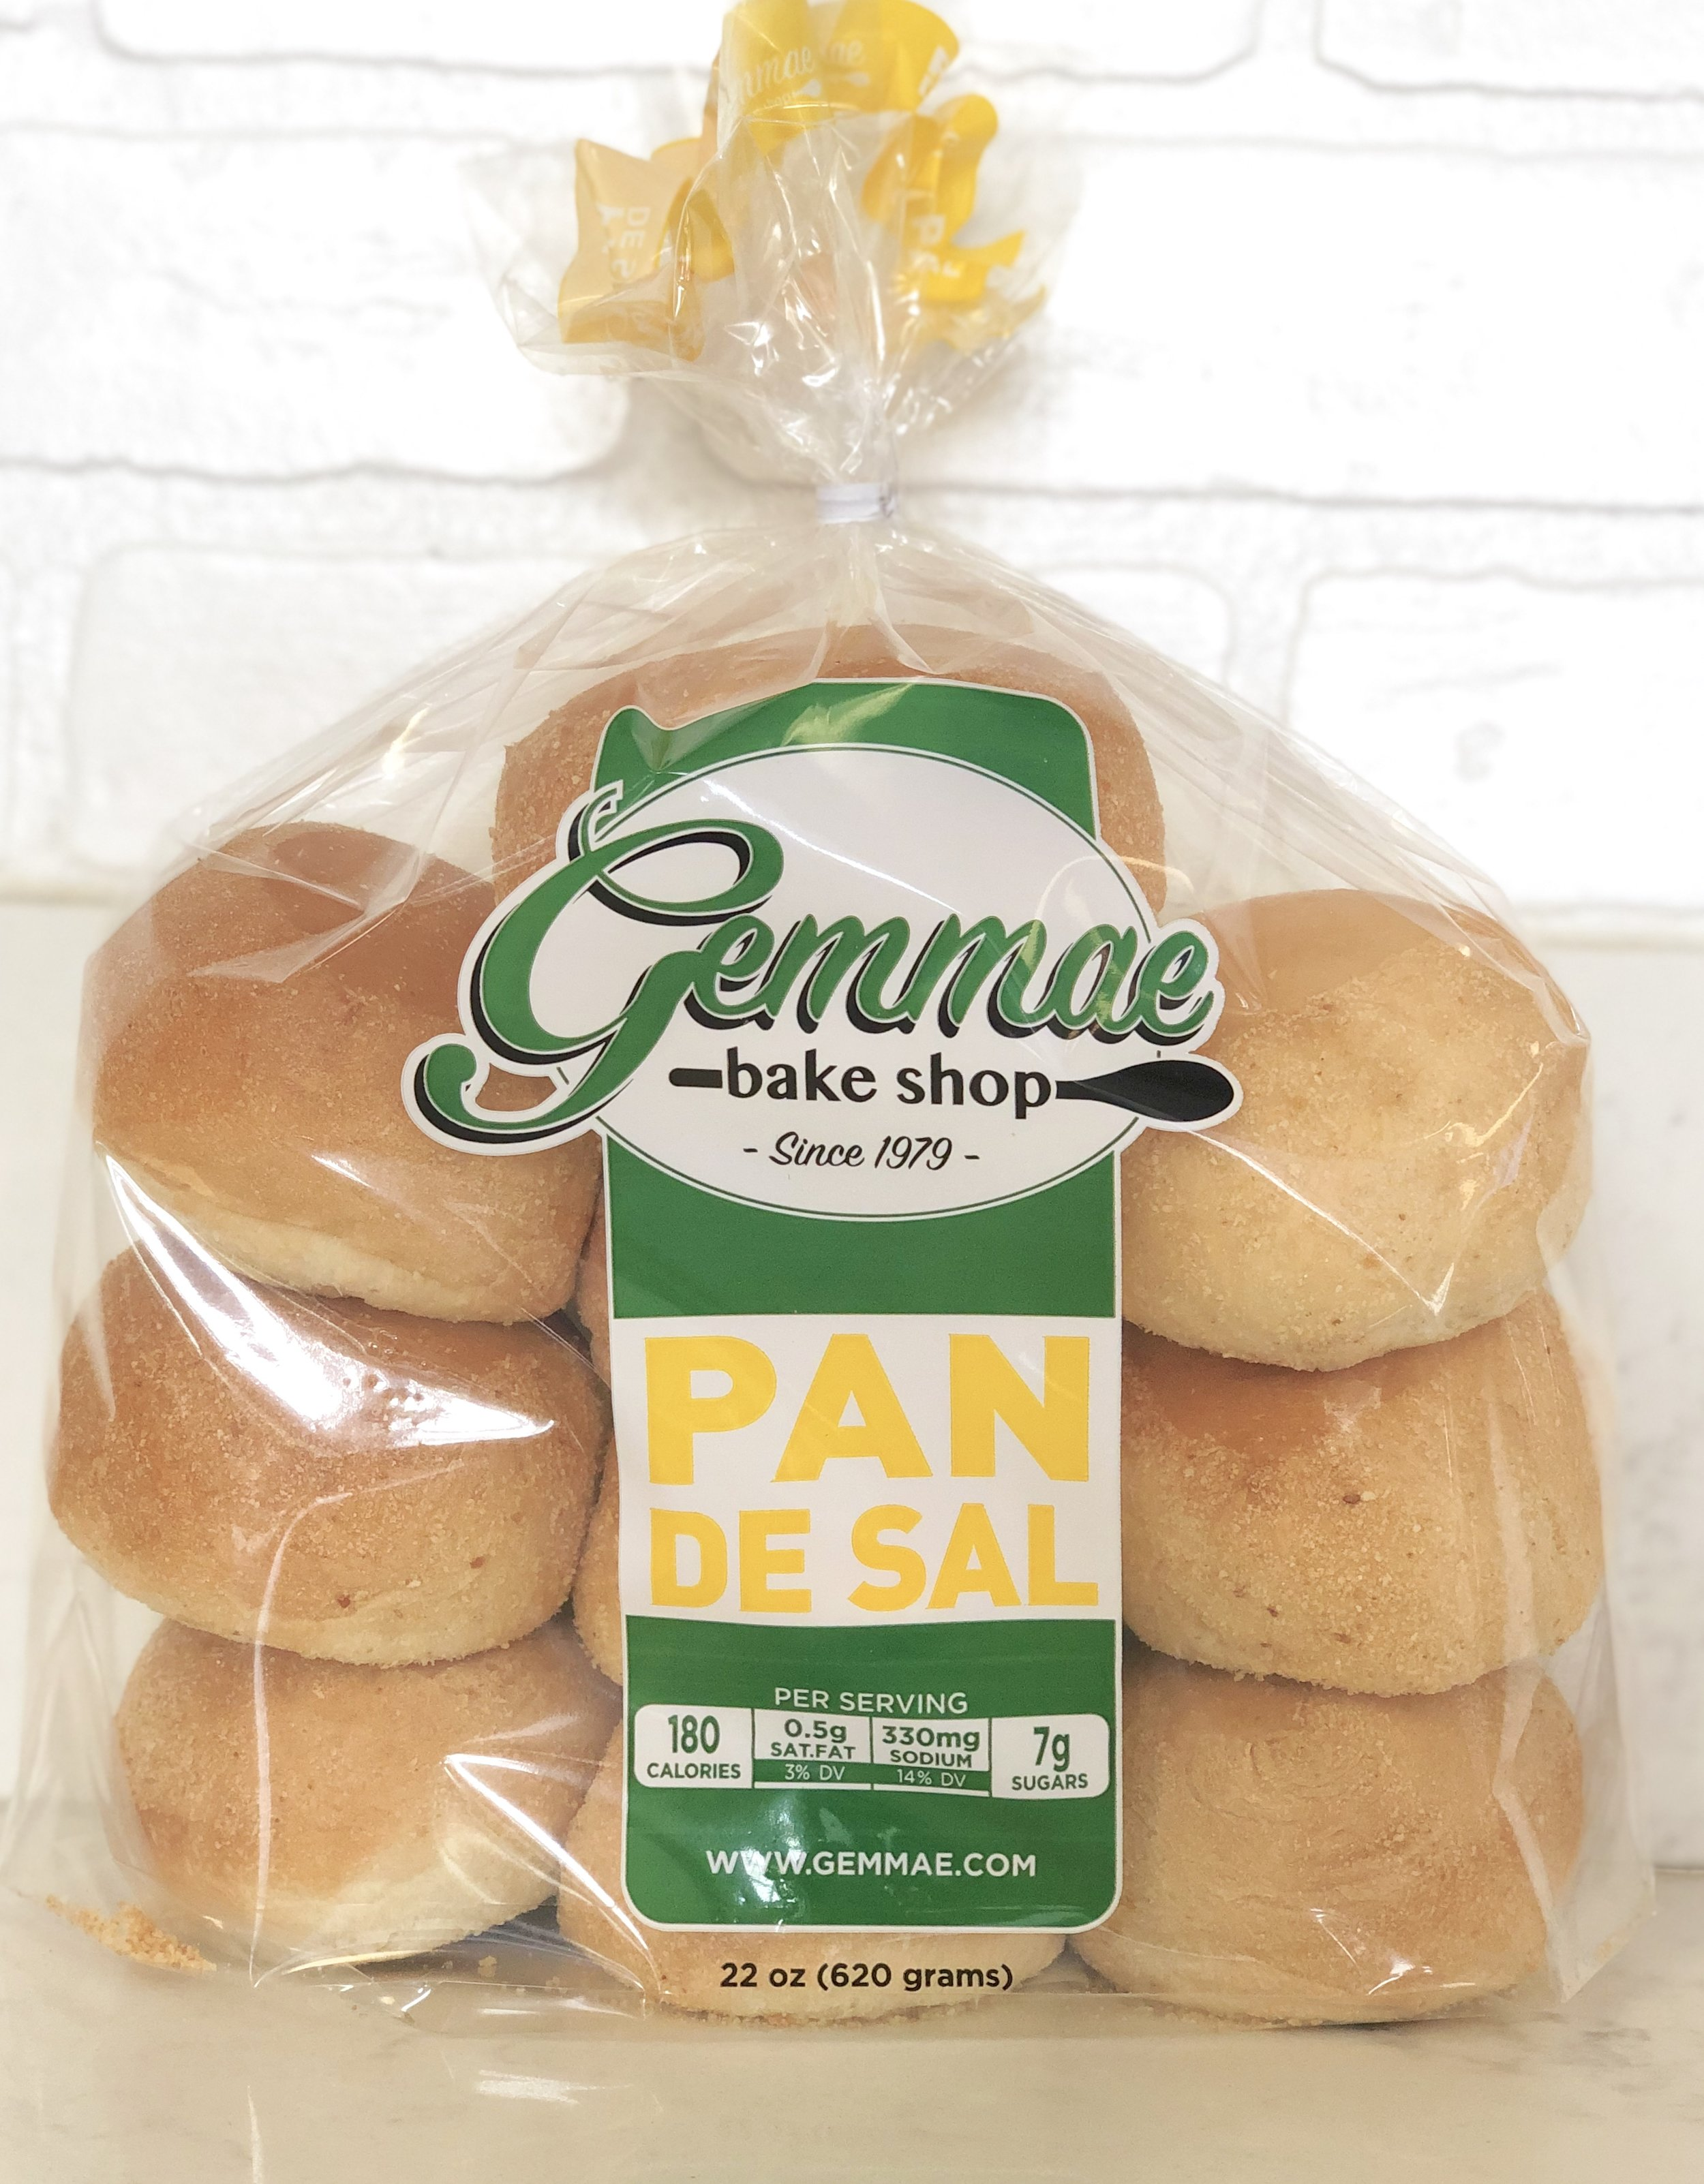 PAN DE SAL   Our famous Filipino bread bun. Soft, fluffy, and baked every morning to ensure freshness. Each bag contains 10 bread buns.  Available hot and fresh from the oven between 6:30AM - 9AM daily . Best when toasted.